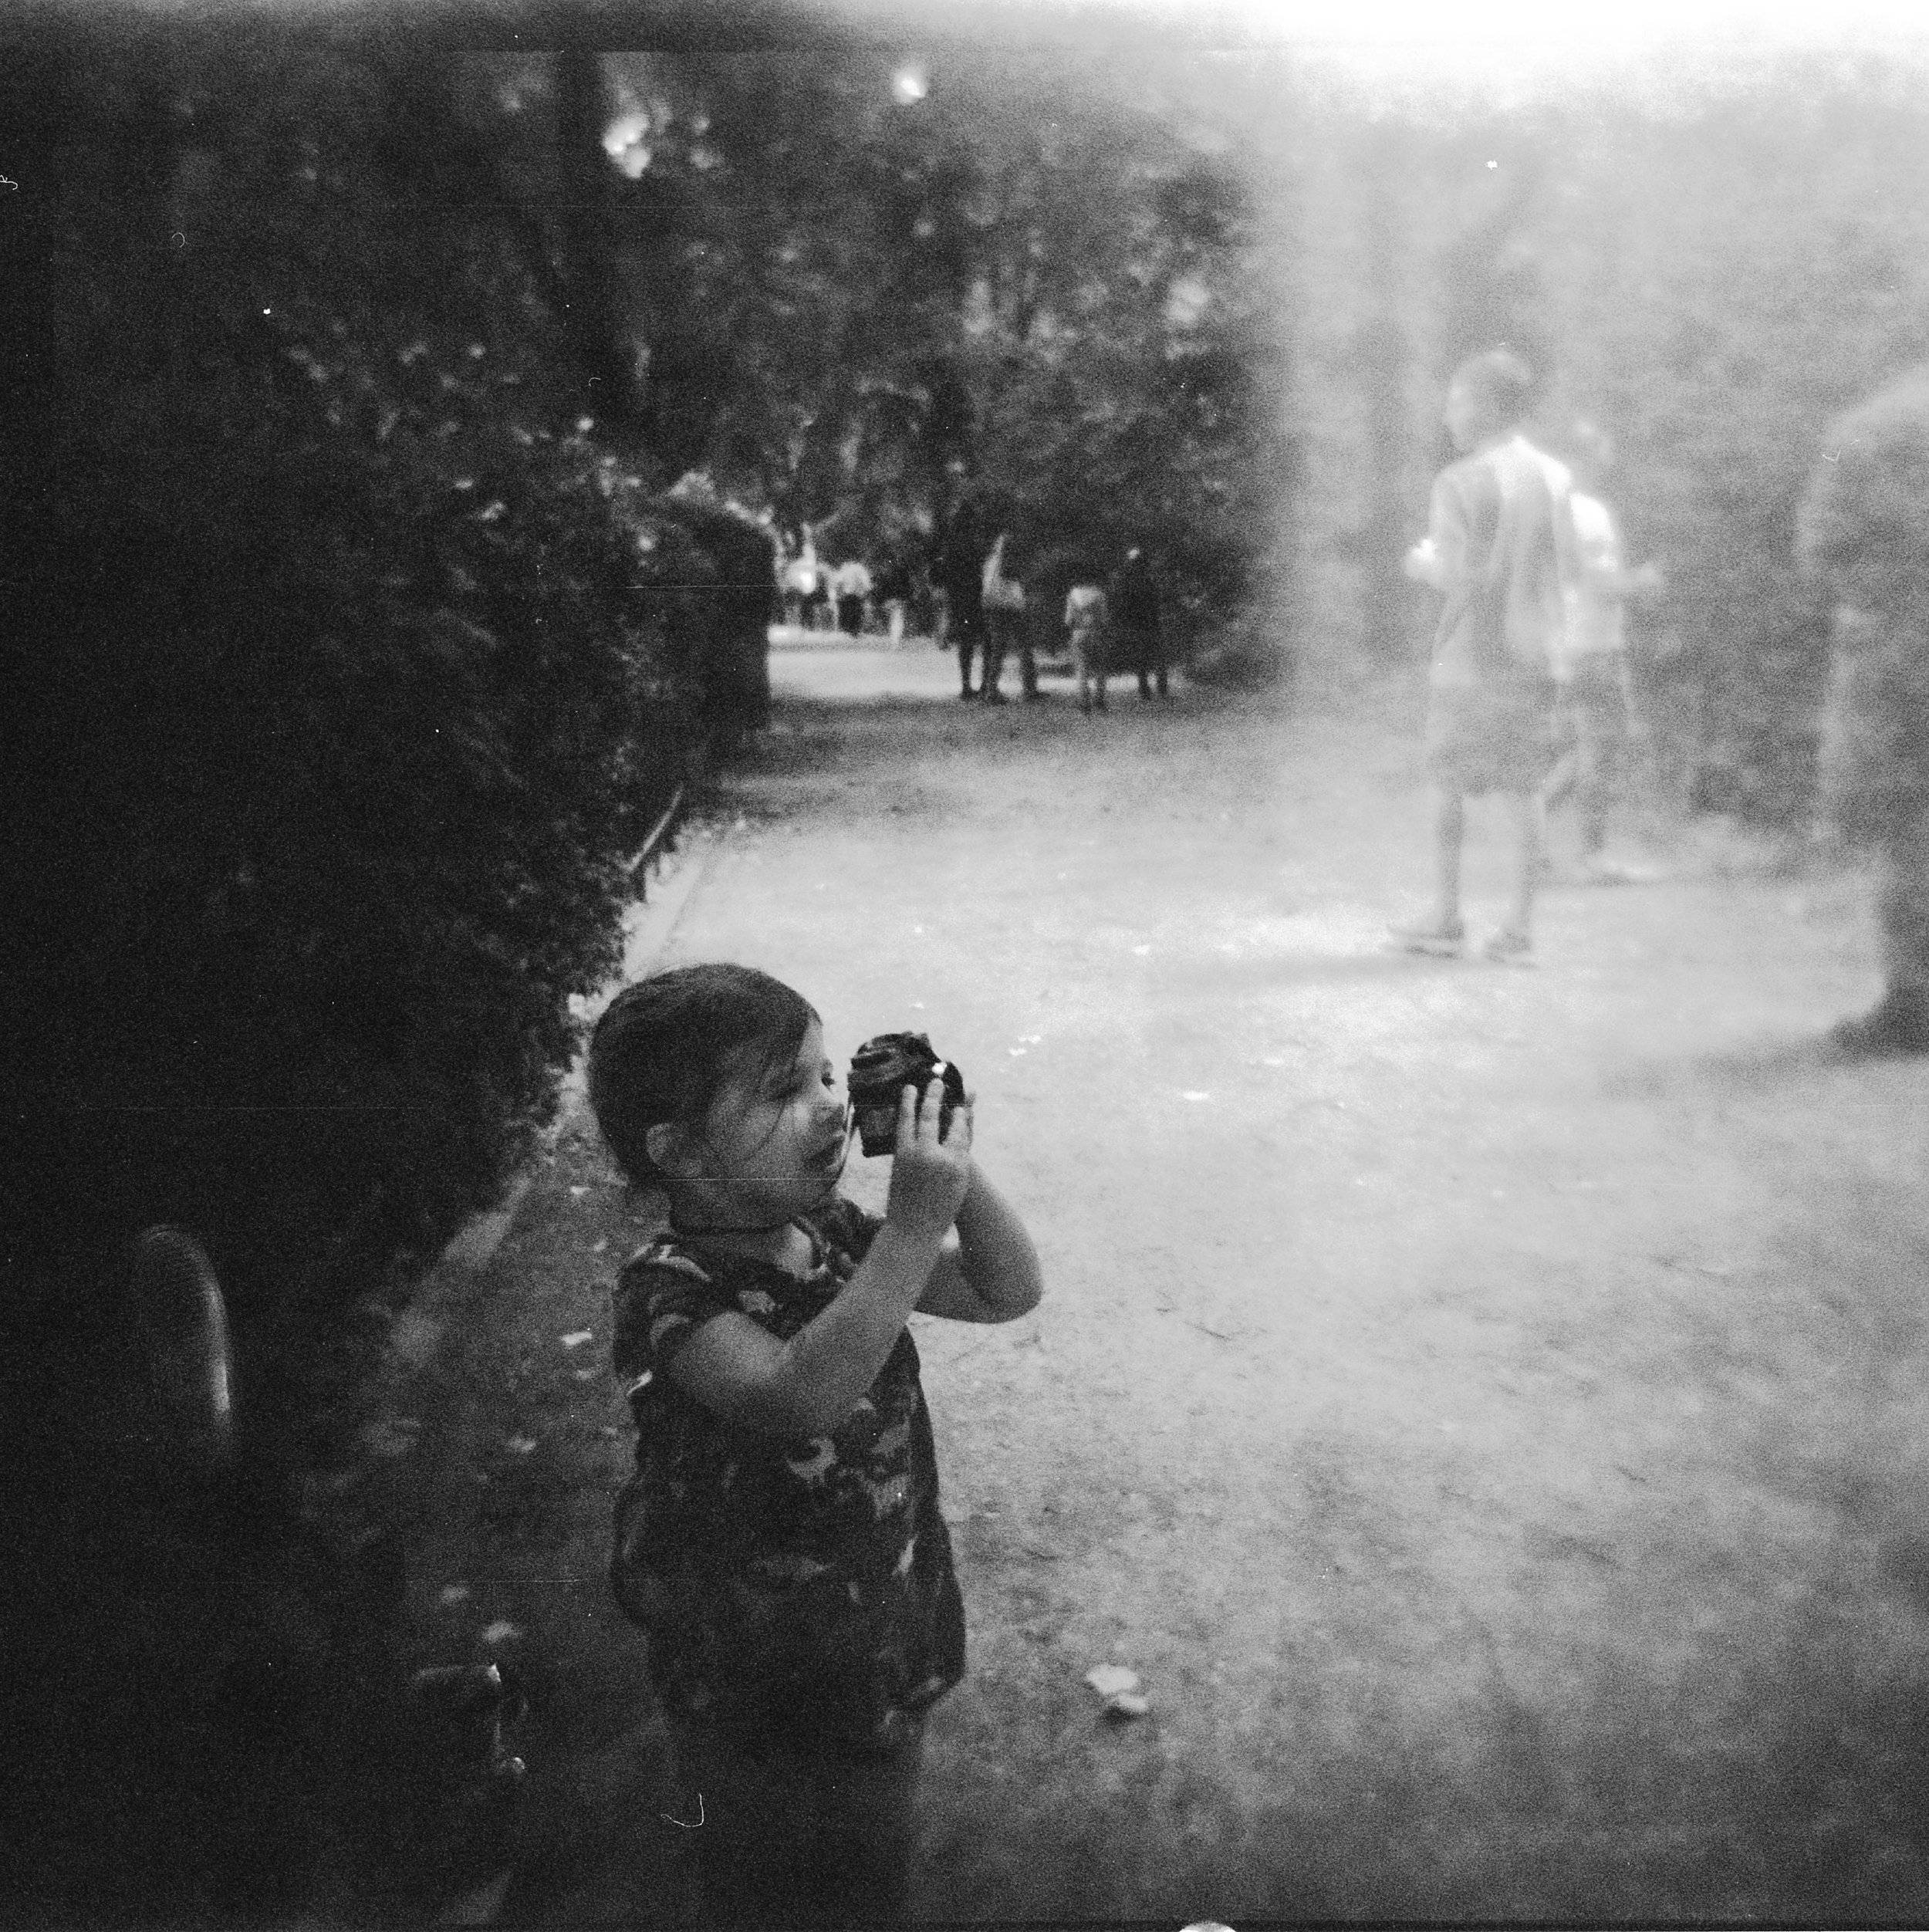 toddler taking a film photo, 120mm film